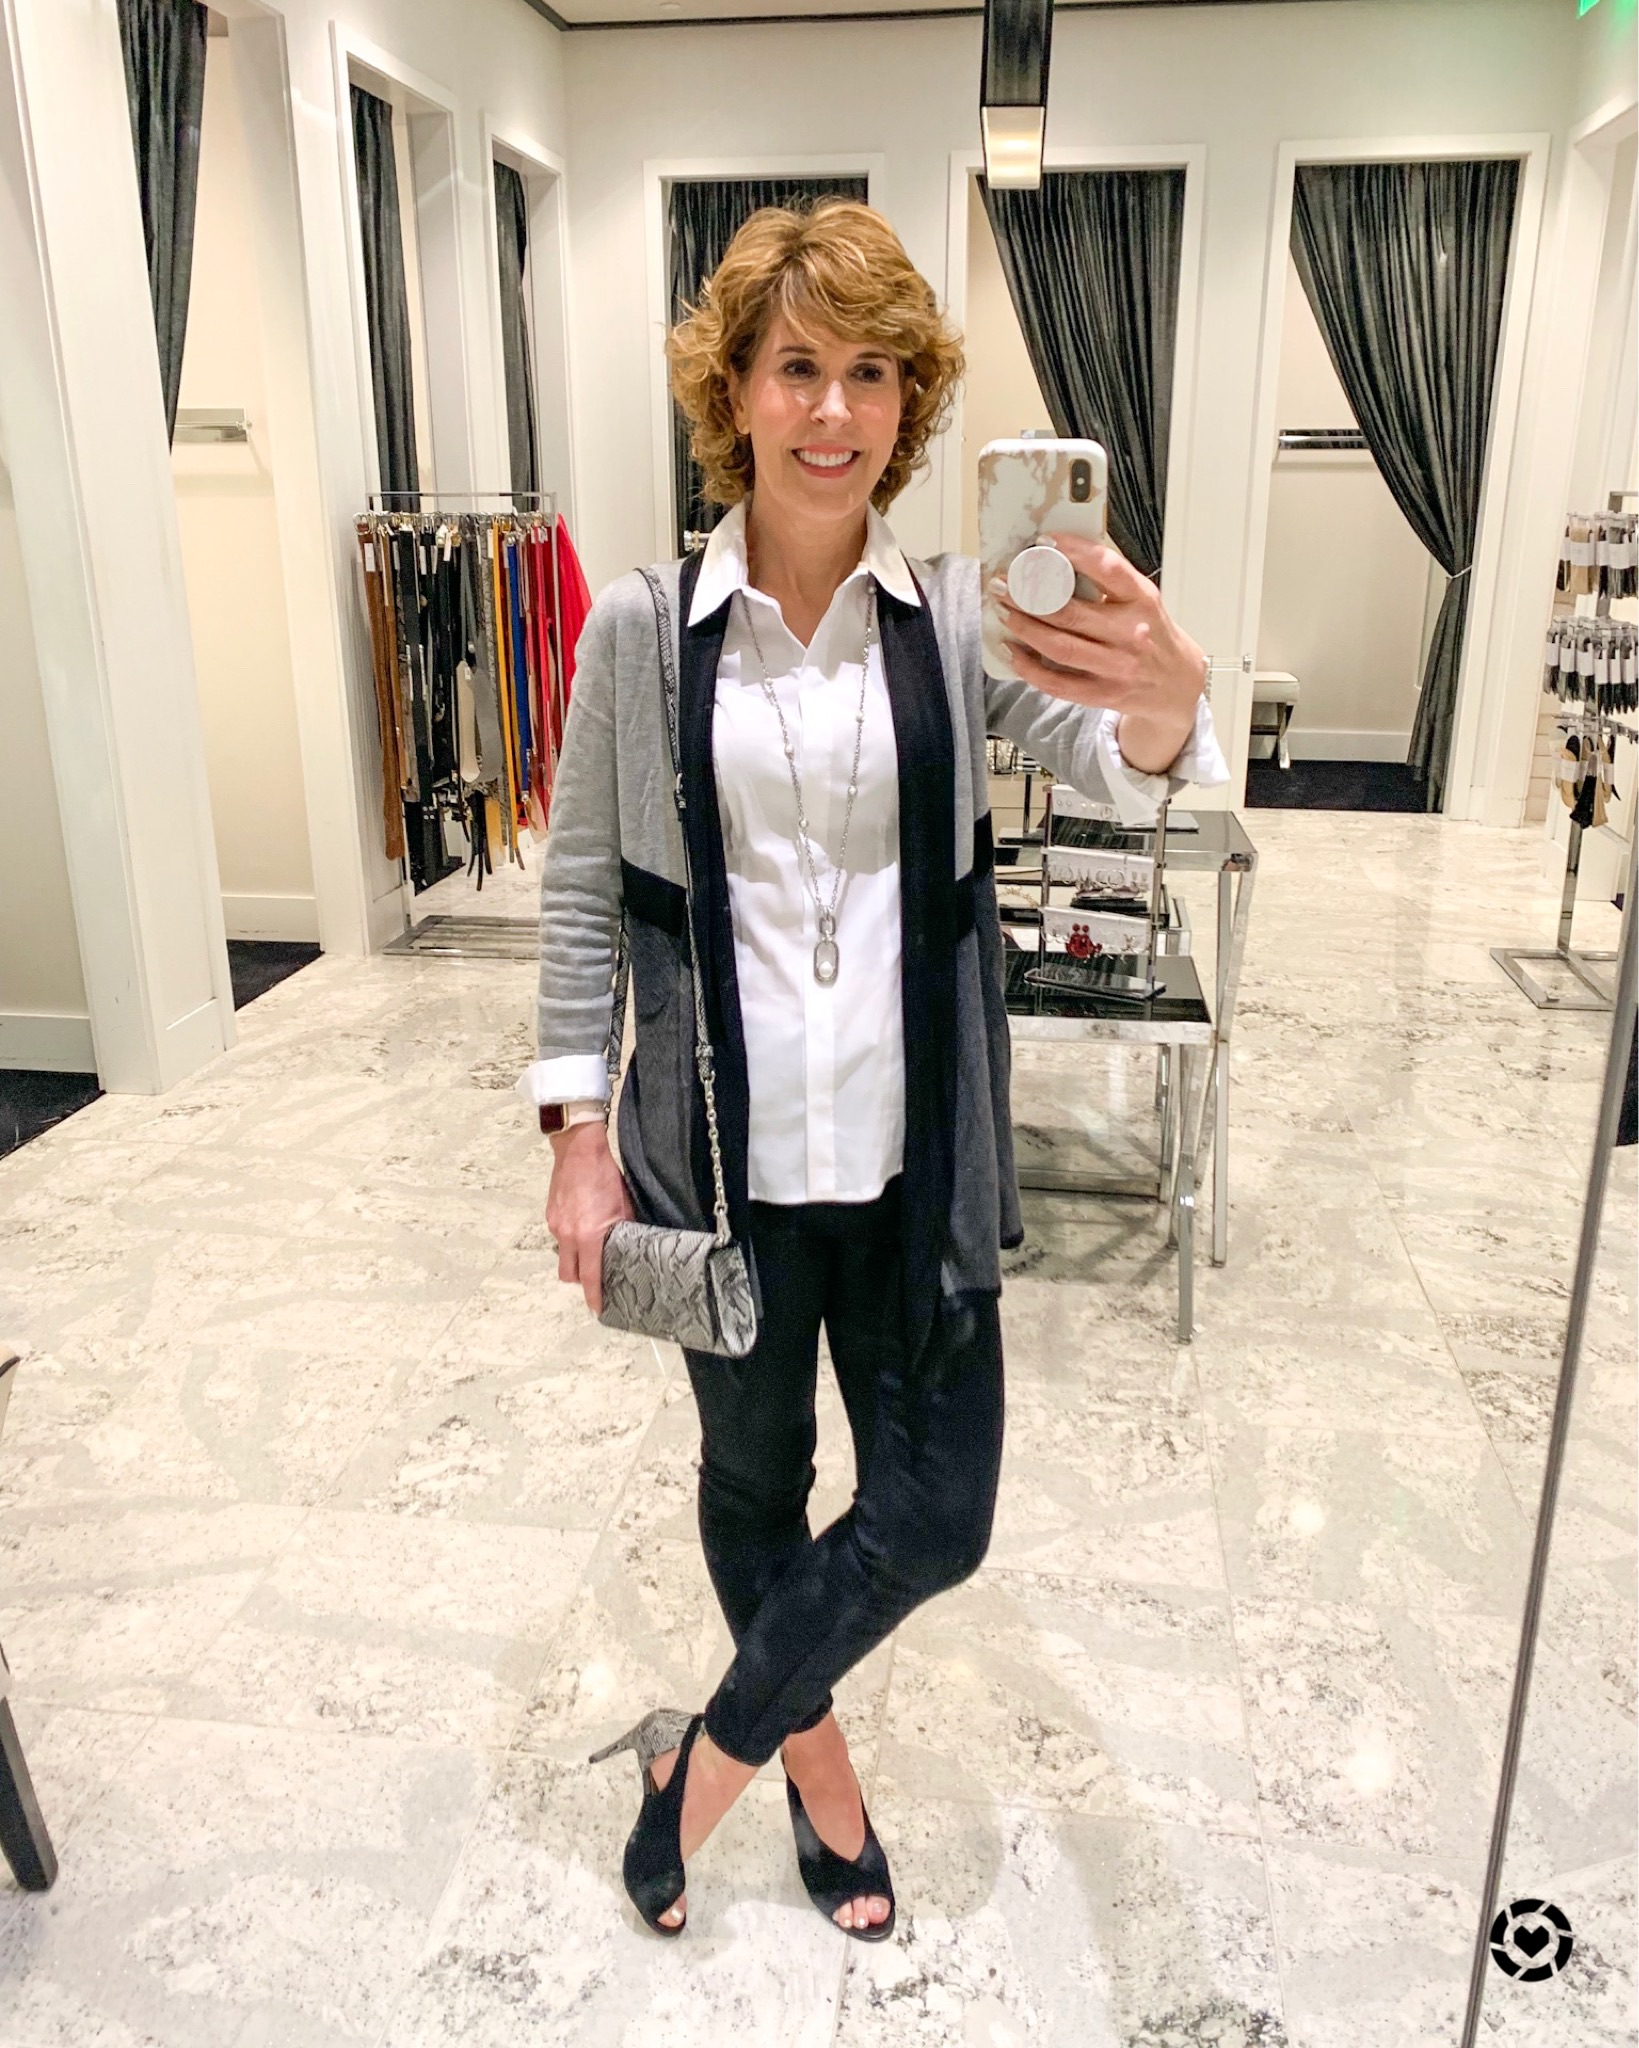 mirror selfie of woman in gray cardigan